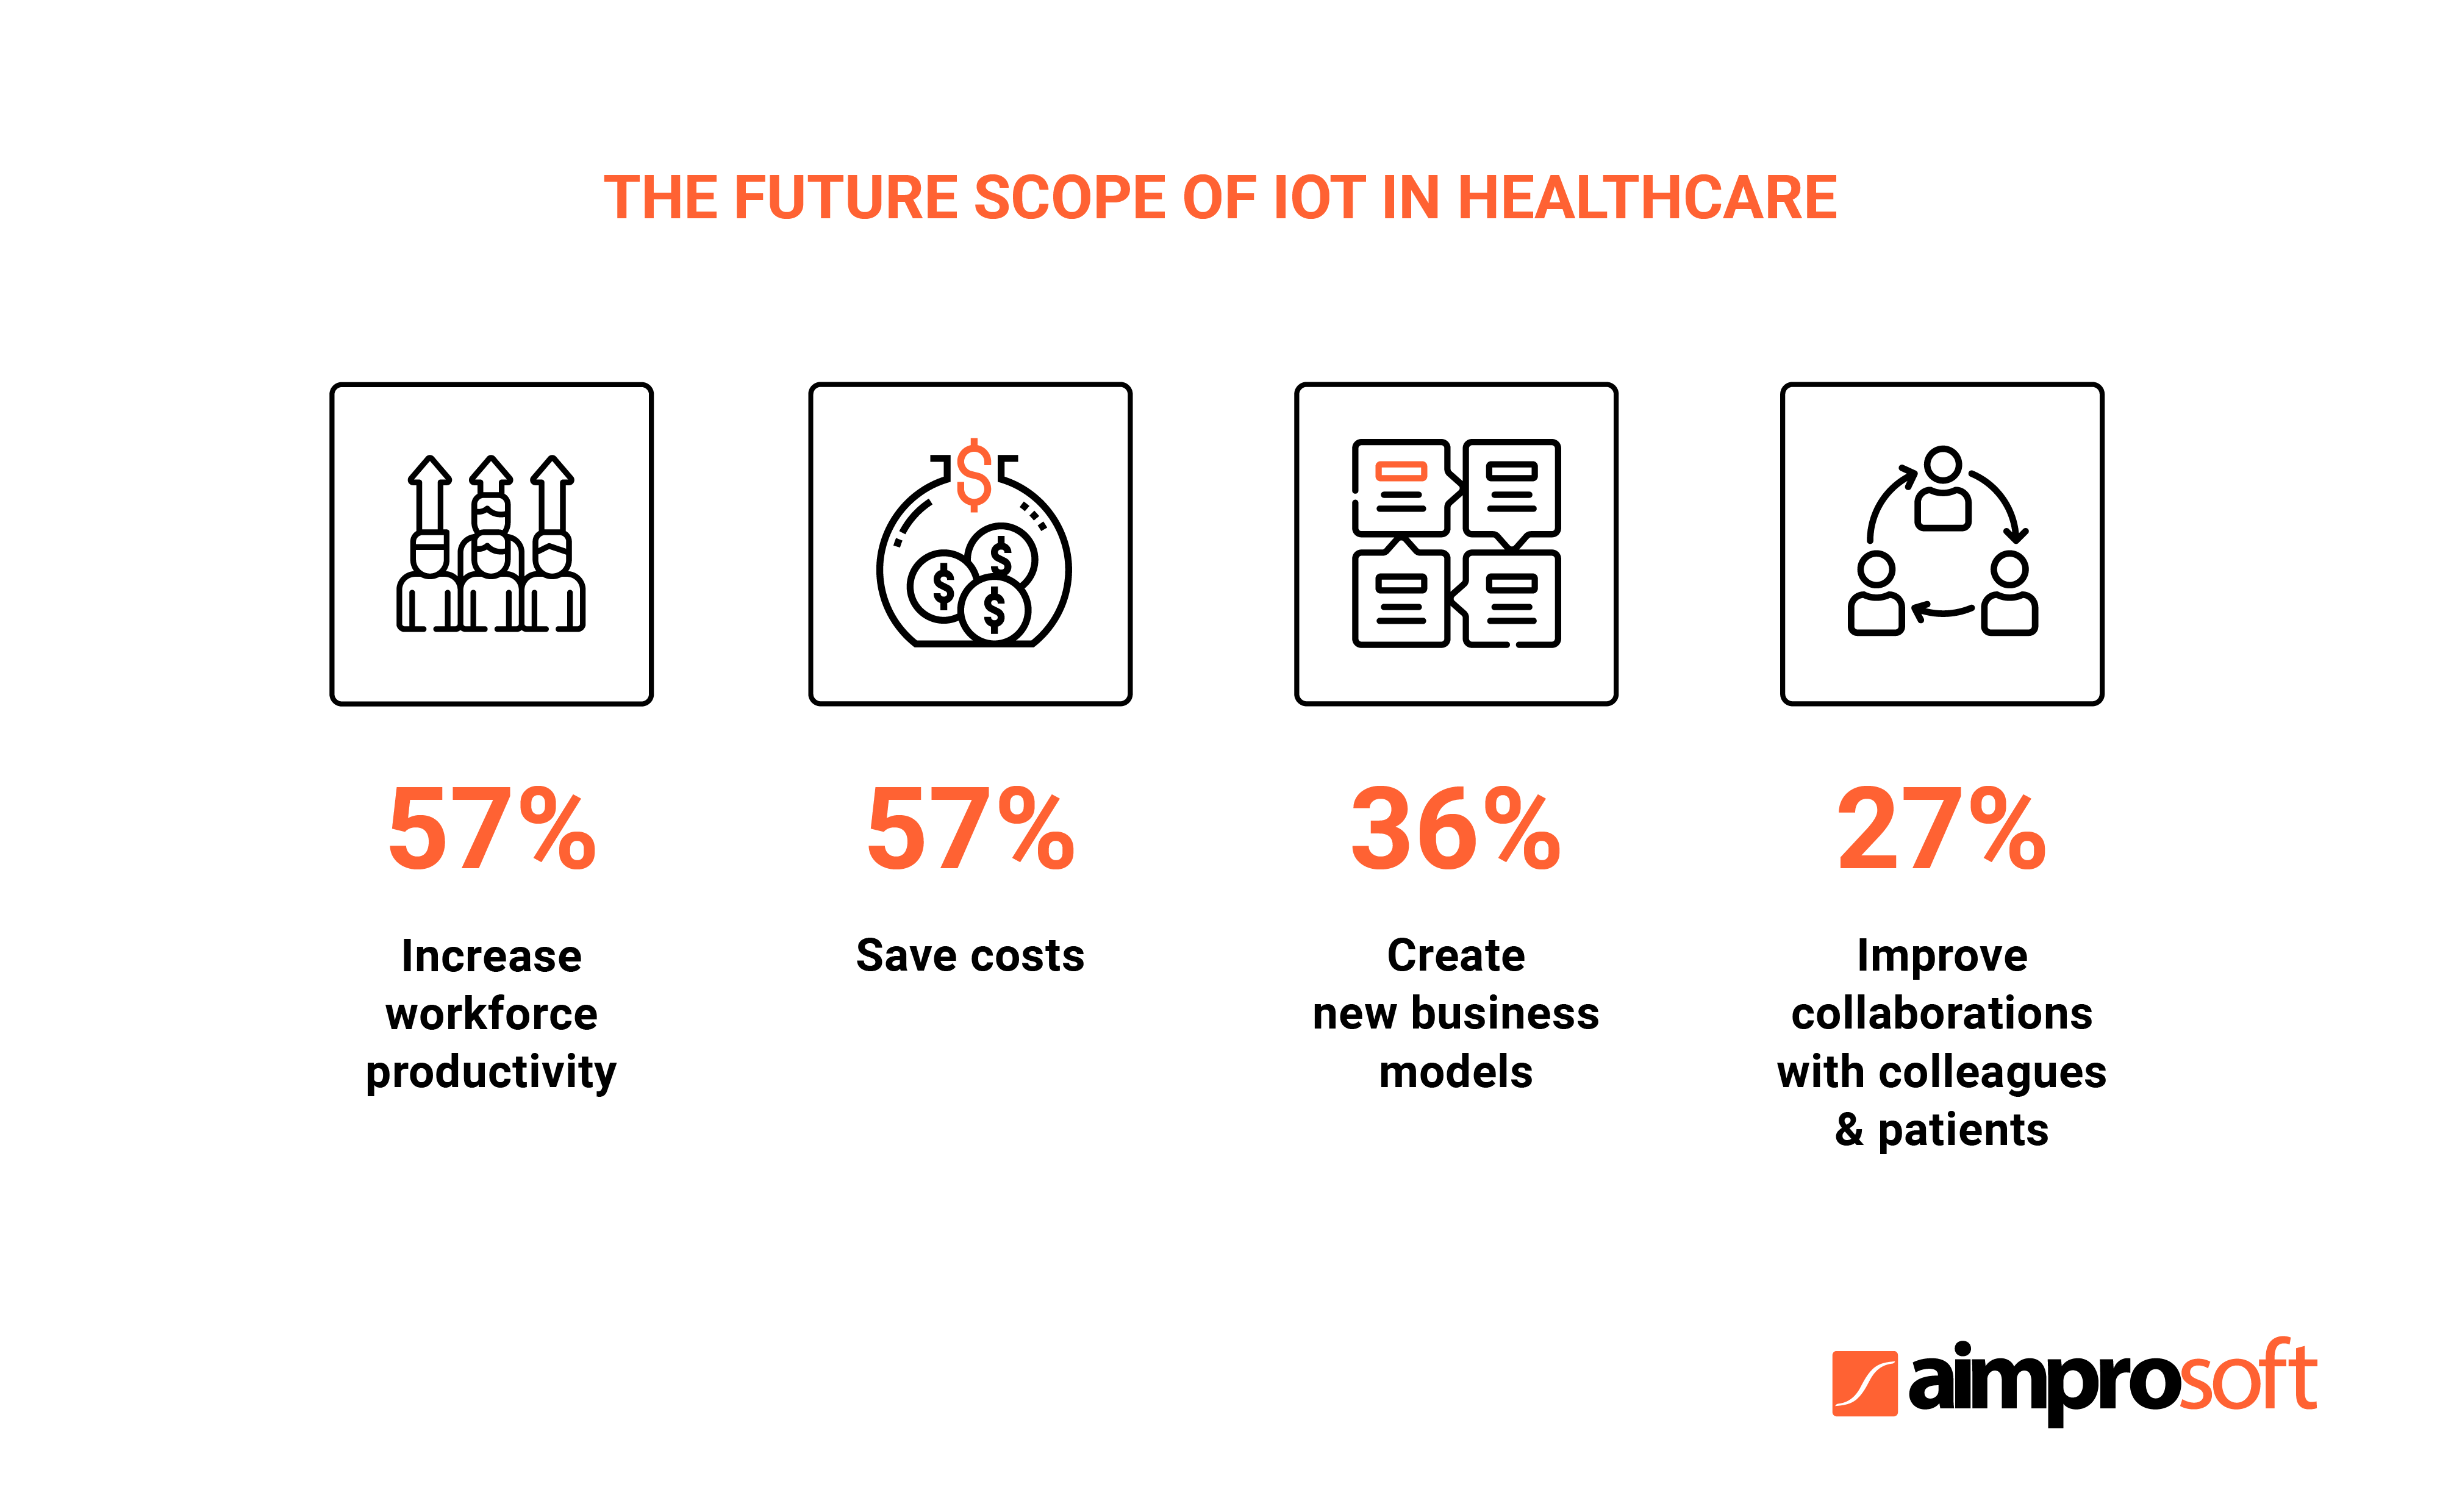 The future impact of IoT in healthcare